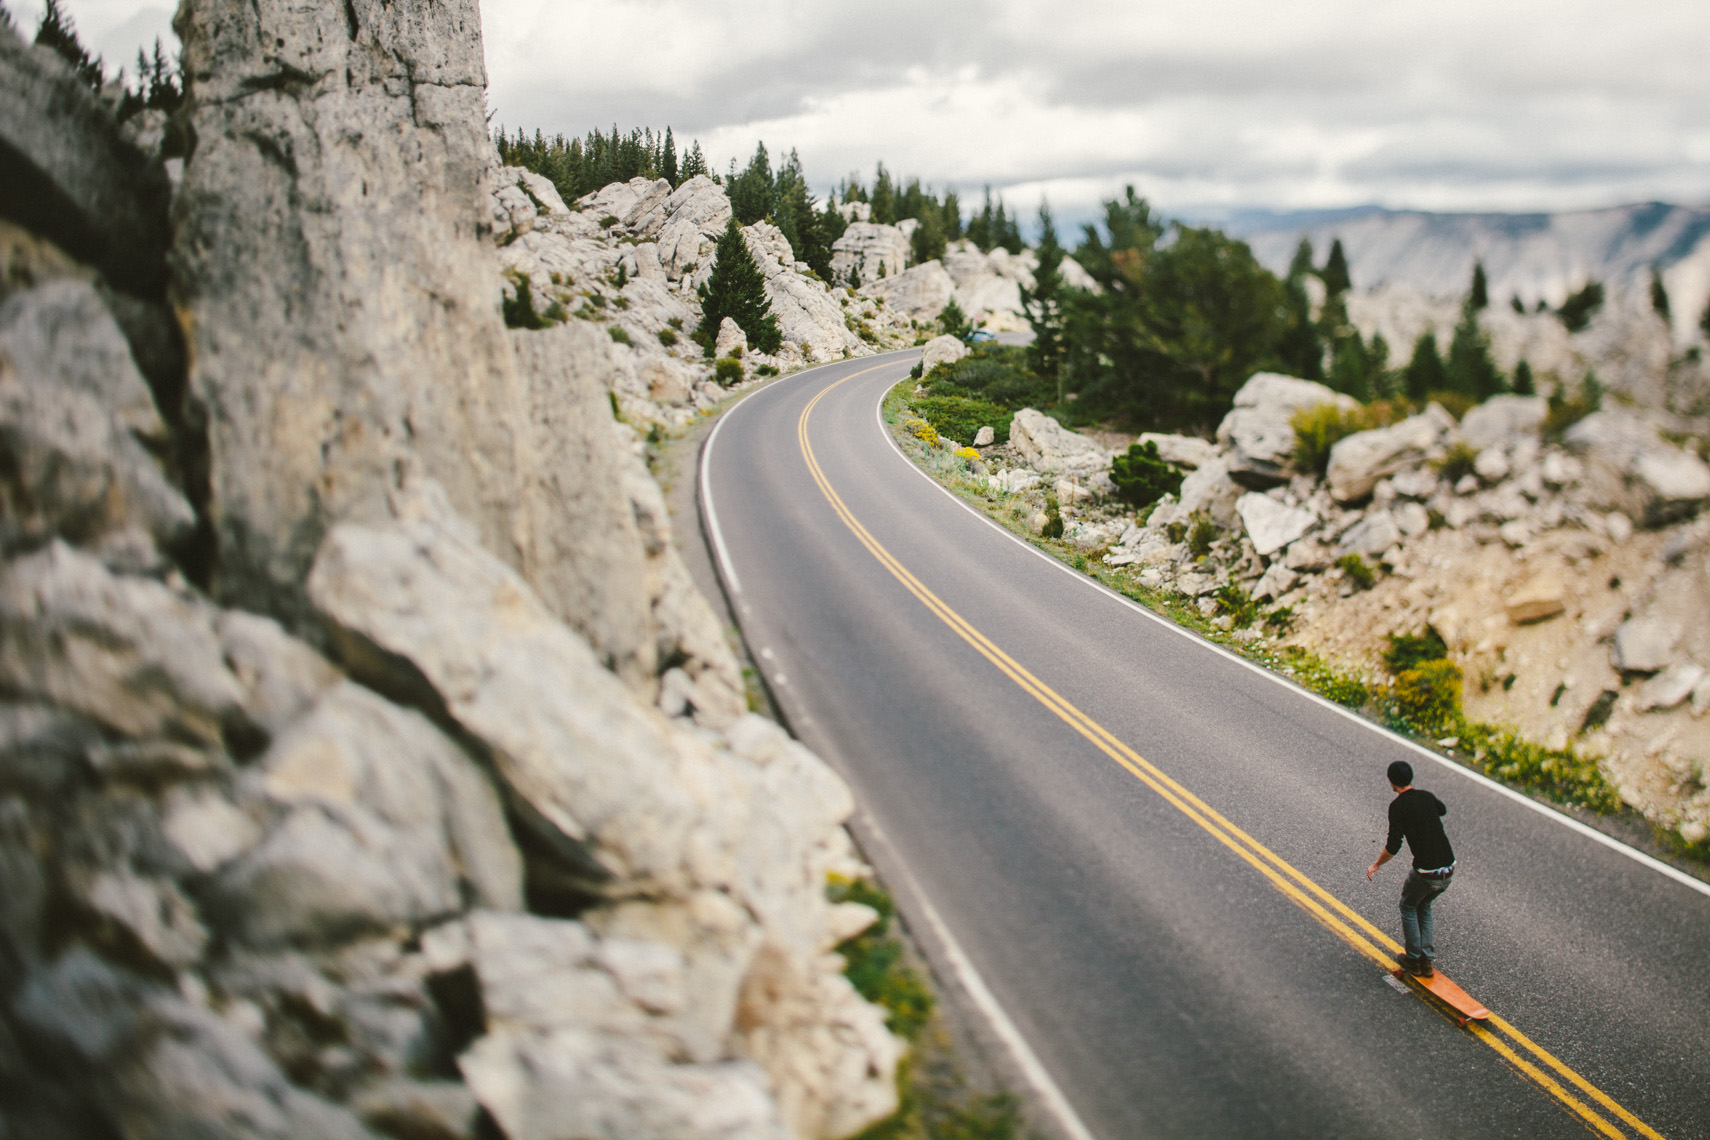 Adventure and outdoor lifestyle photogaph by Forest Woodward long boarding in Yellowstone National Park USA